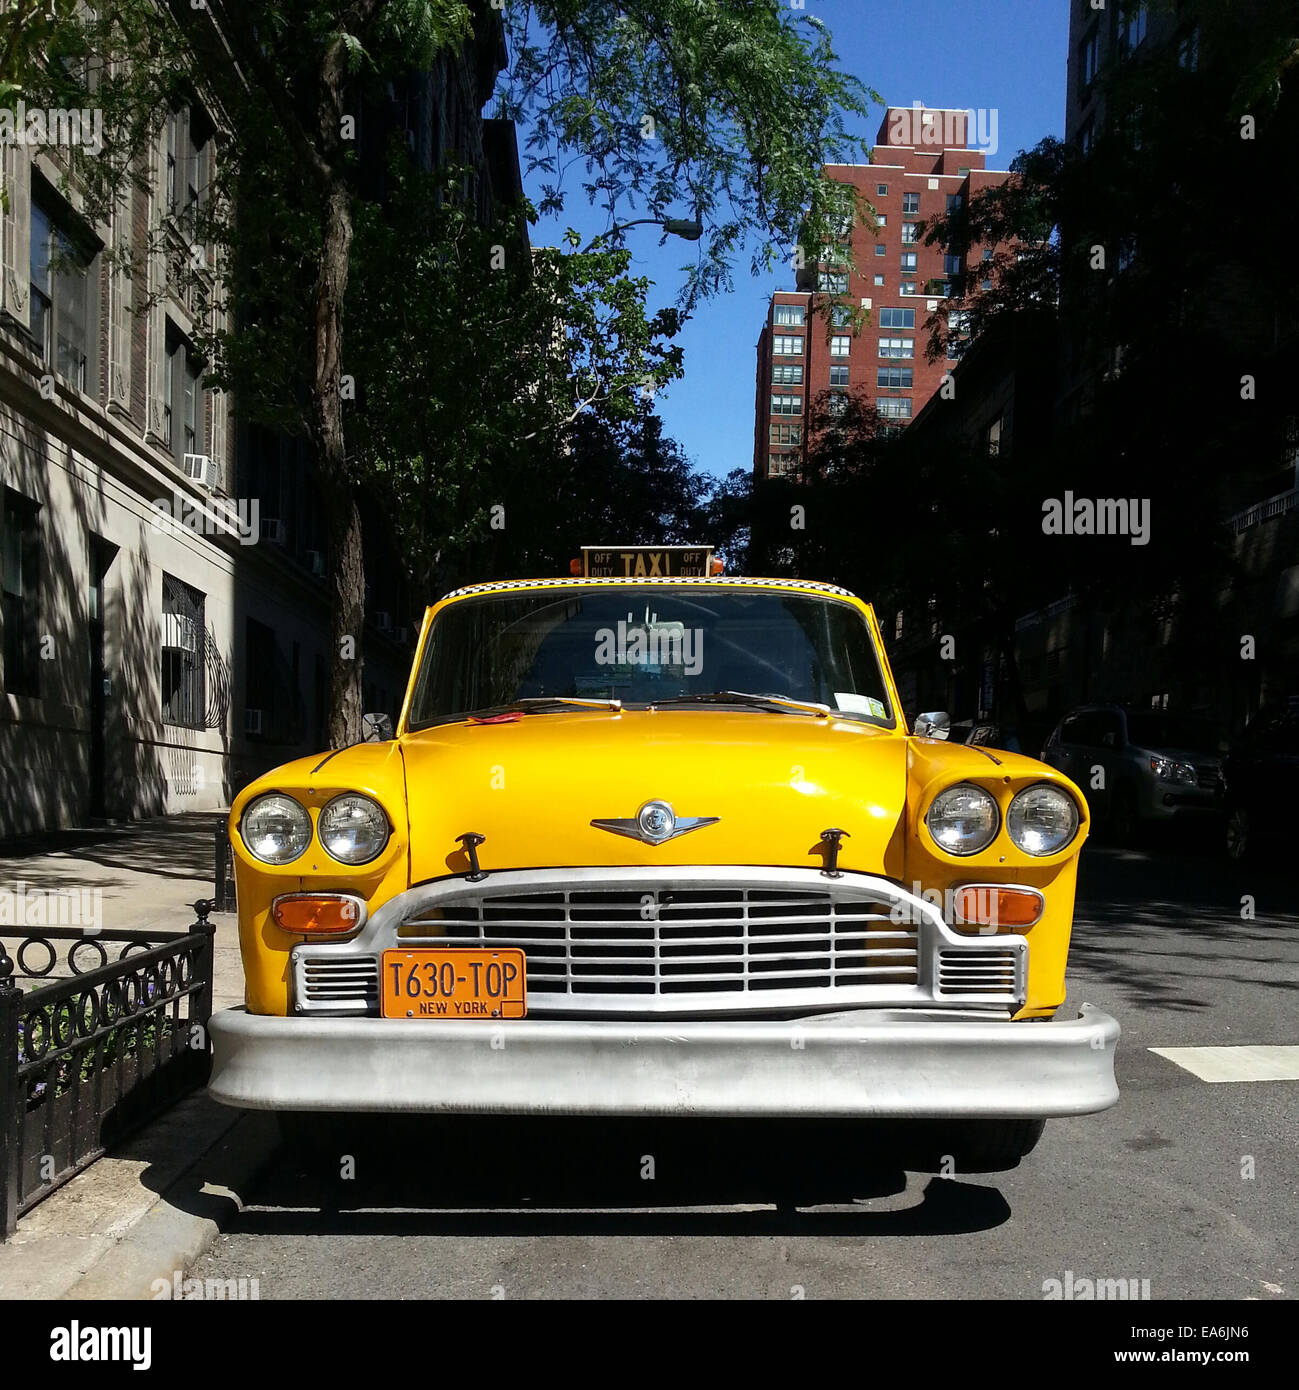 Yellow cab parked on the street, Manhattan, New York, America, USA - Stock Image